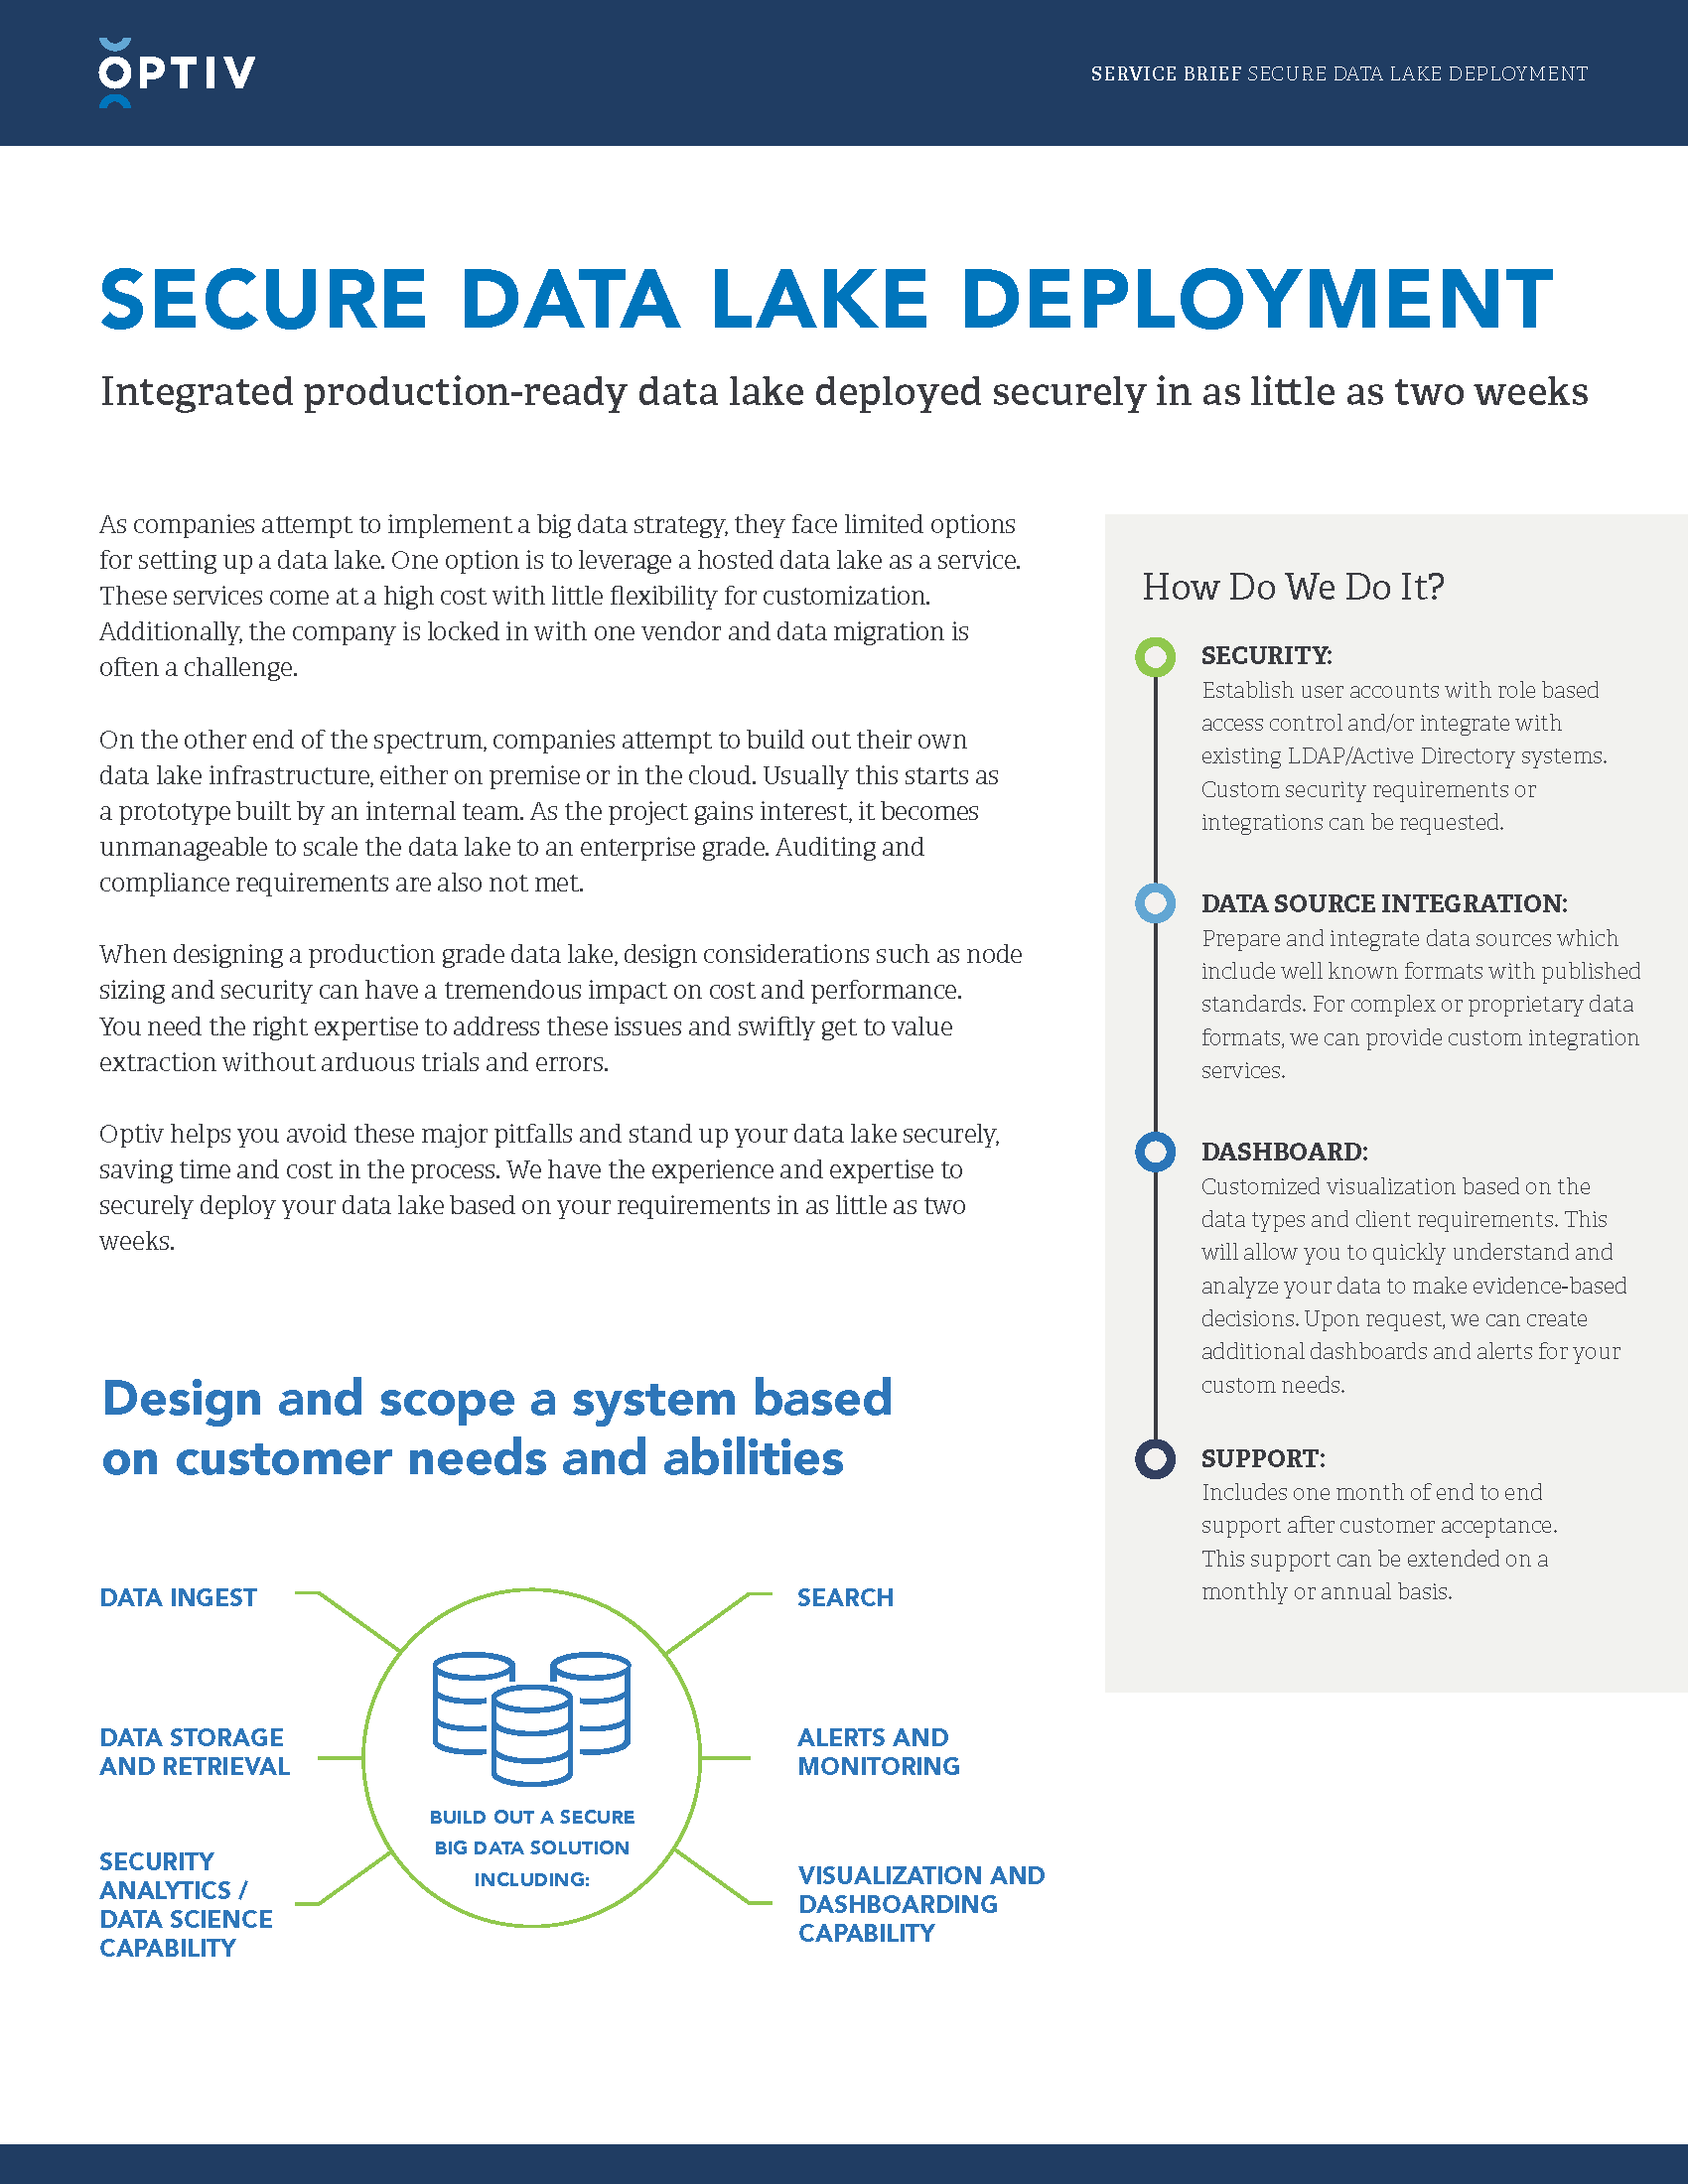 Secure Data Lake Deployment